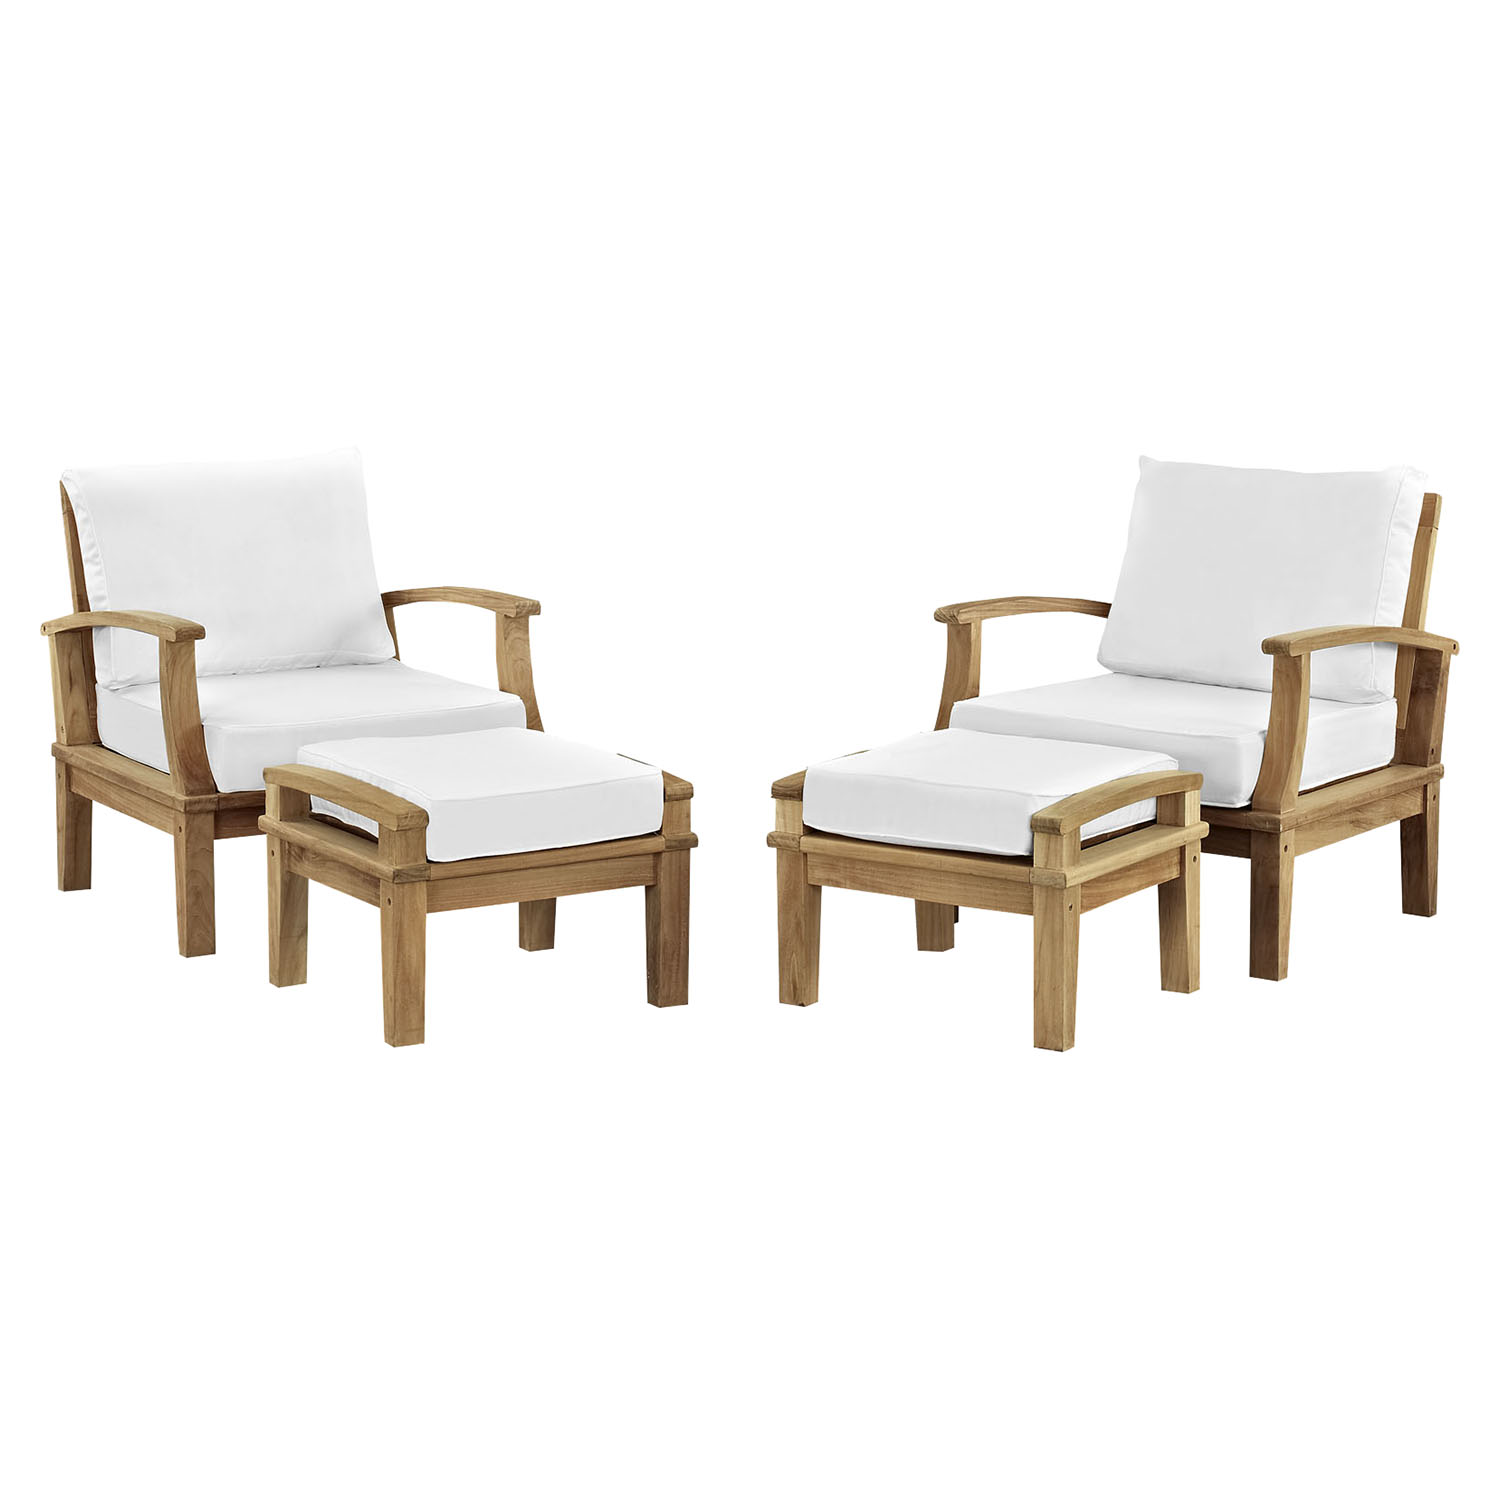 Marina 4 Pieces Patio Teak Sofa Set - White, Natural Frame - EEI-1537-NAT-WHI-SET